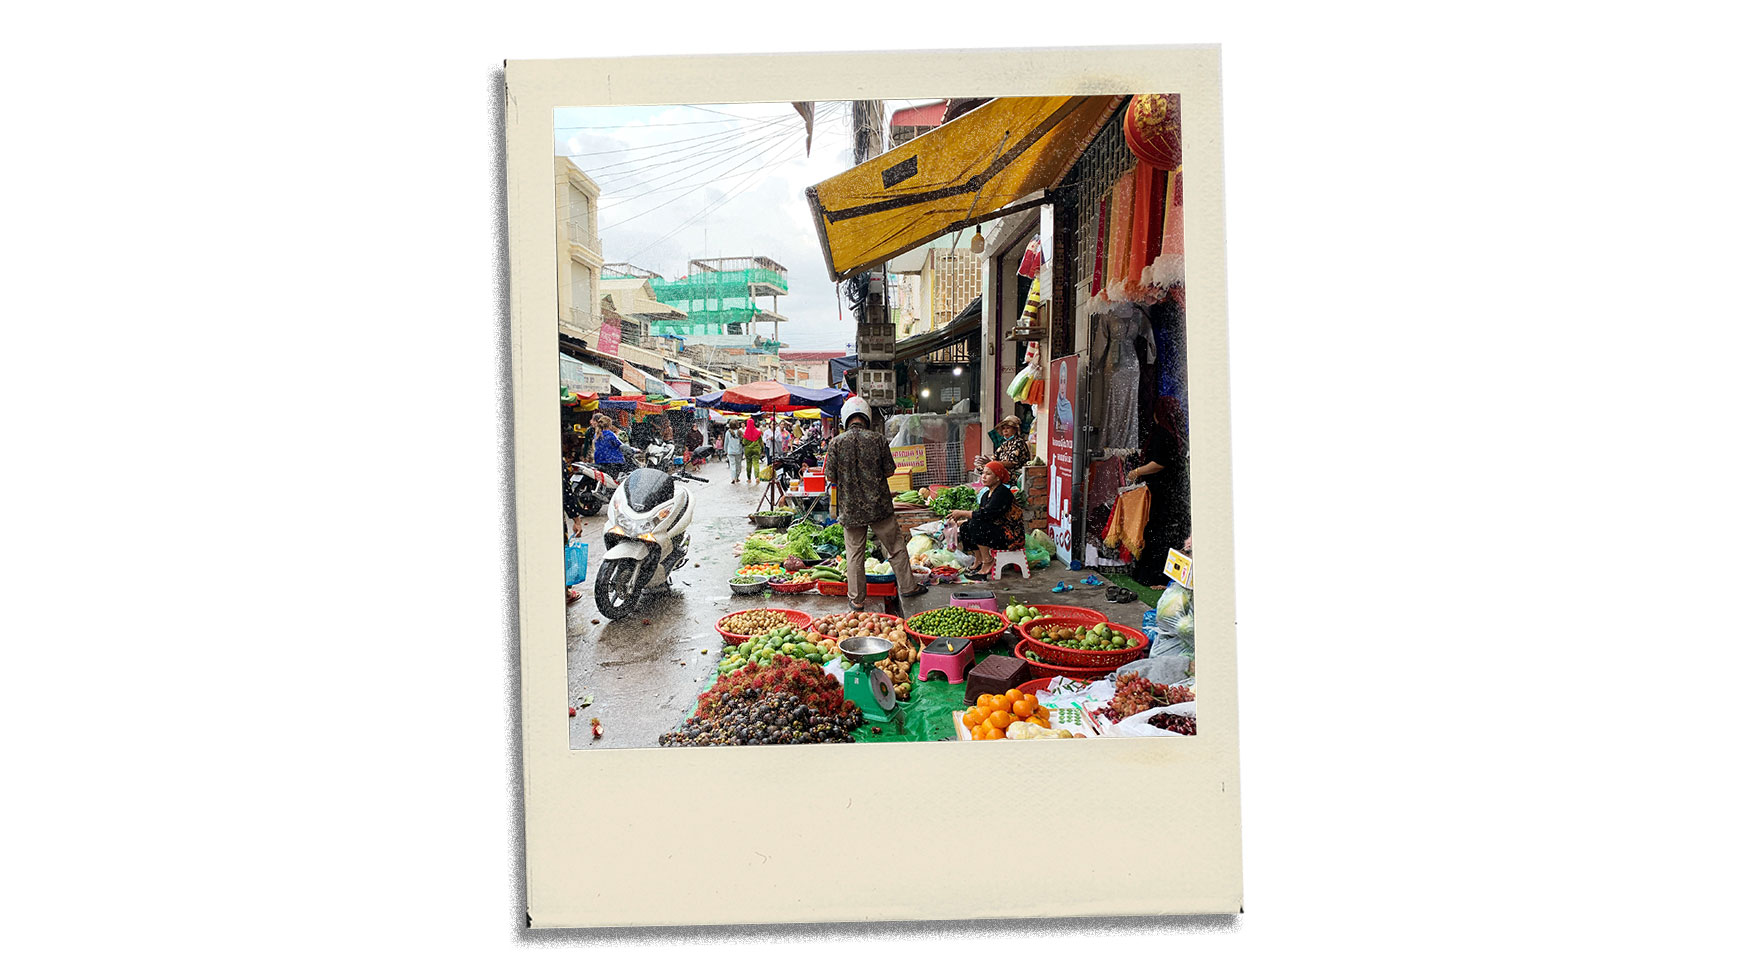 Article-Postcard-from-Phnom-Penh-Cambodia